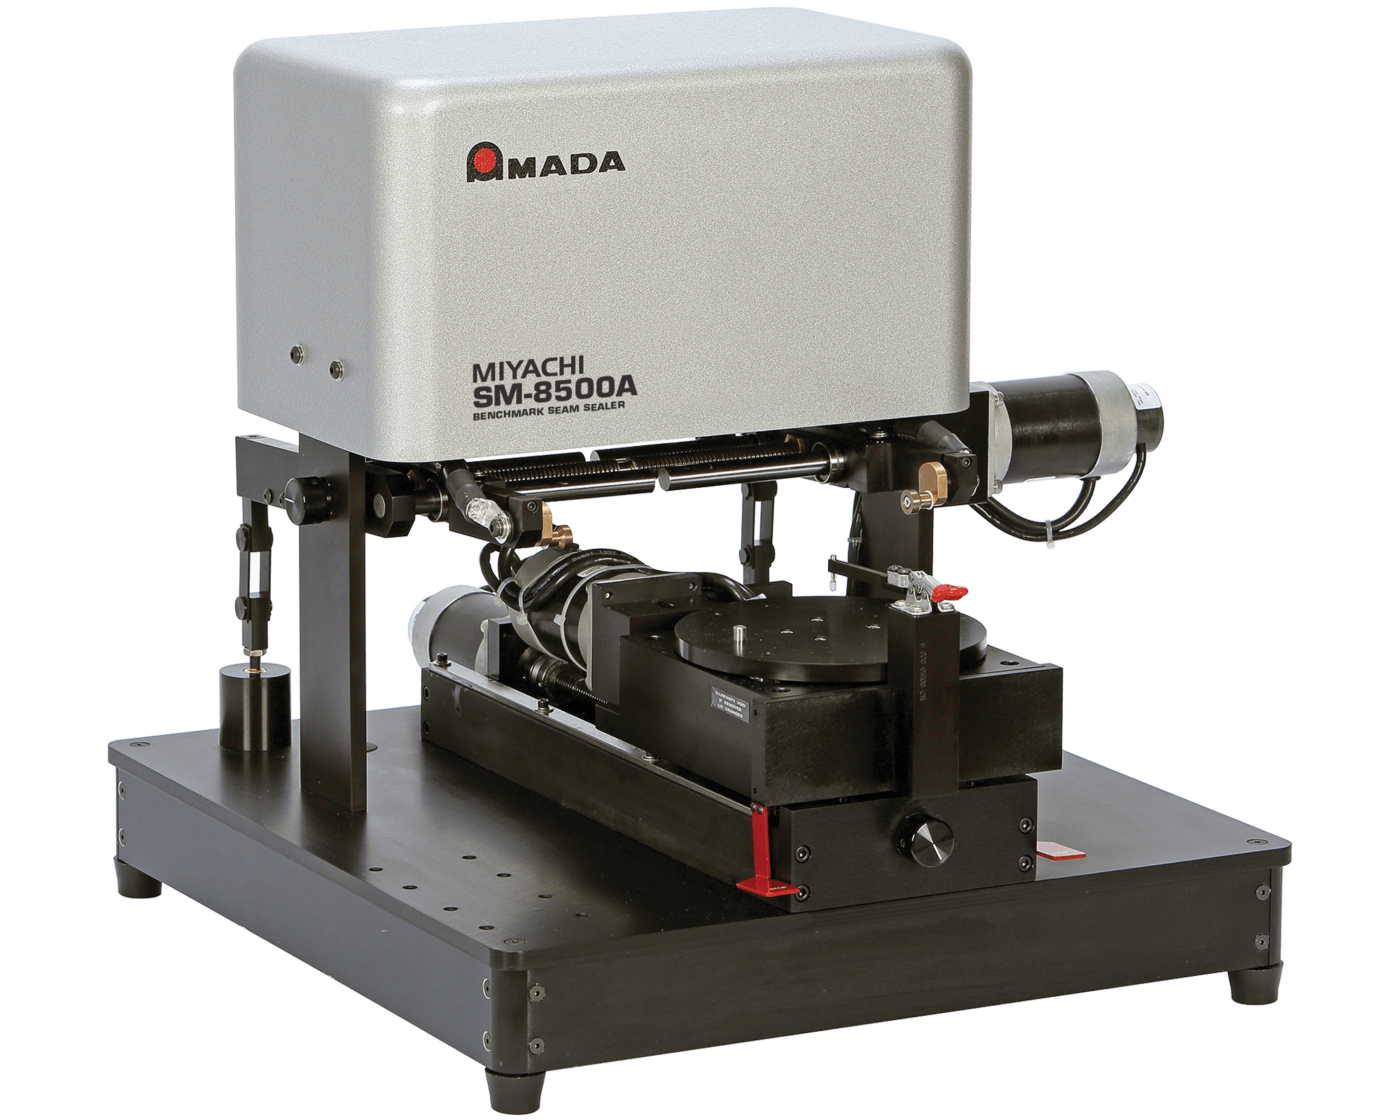 SM-8500A Parallel Seam Sealing System